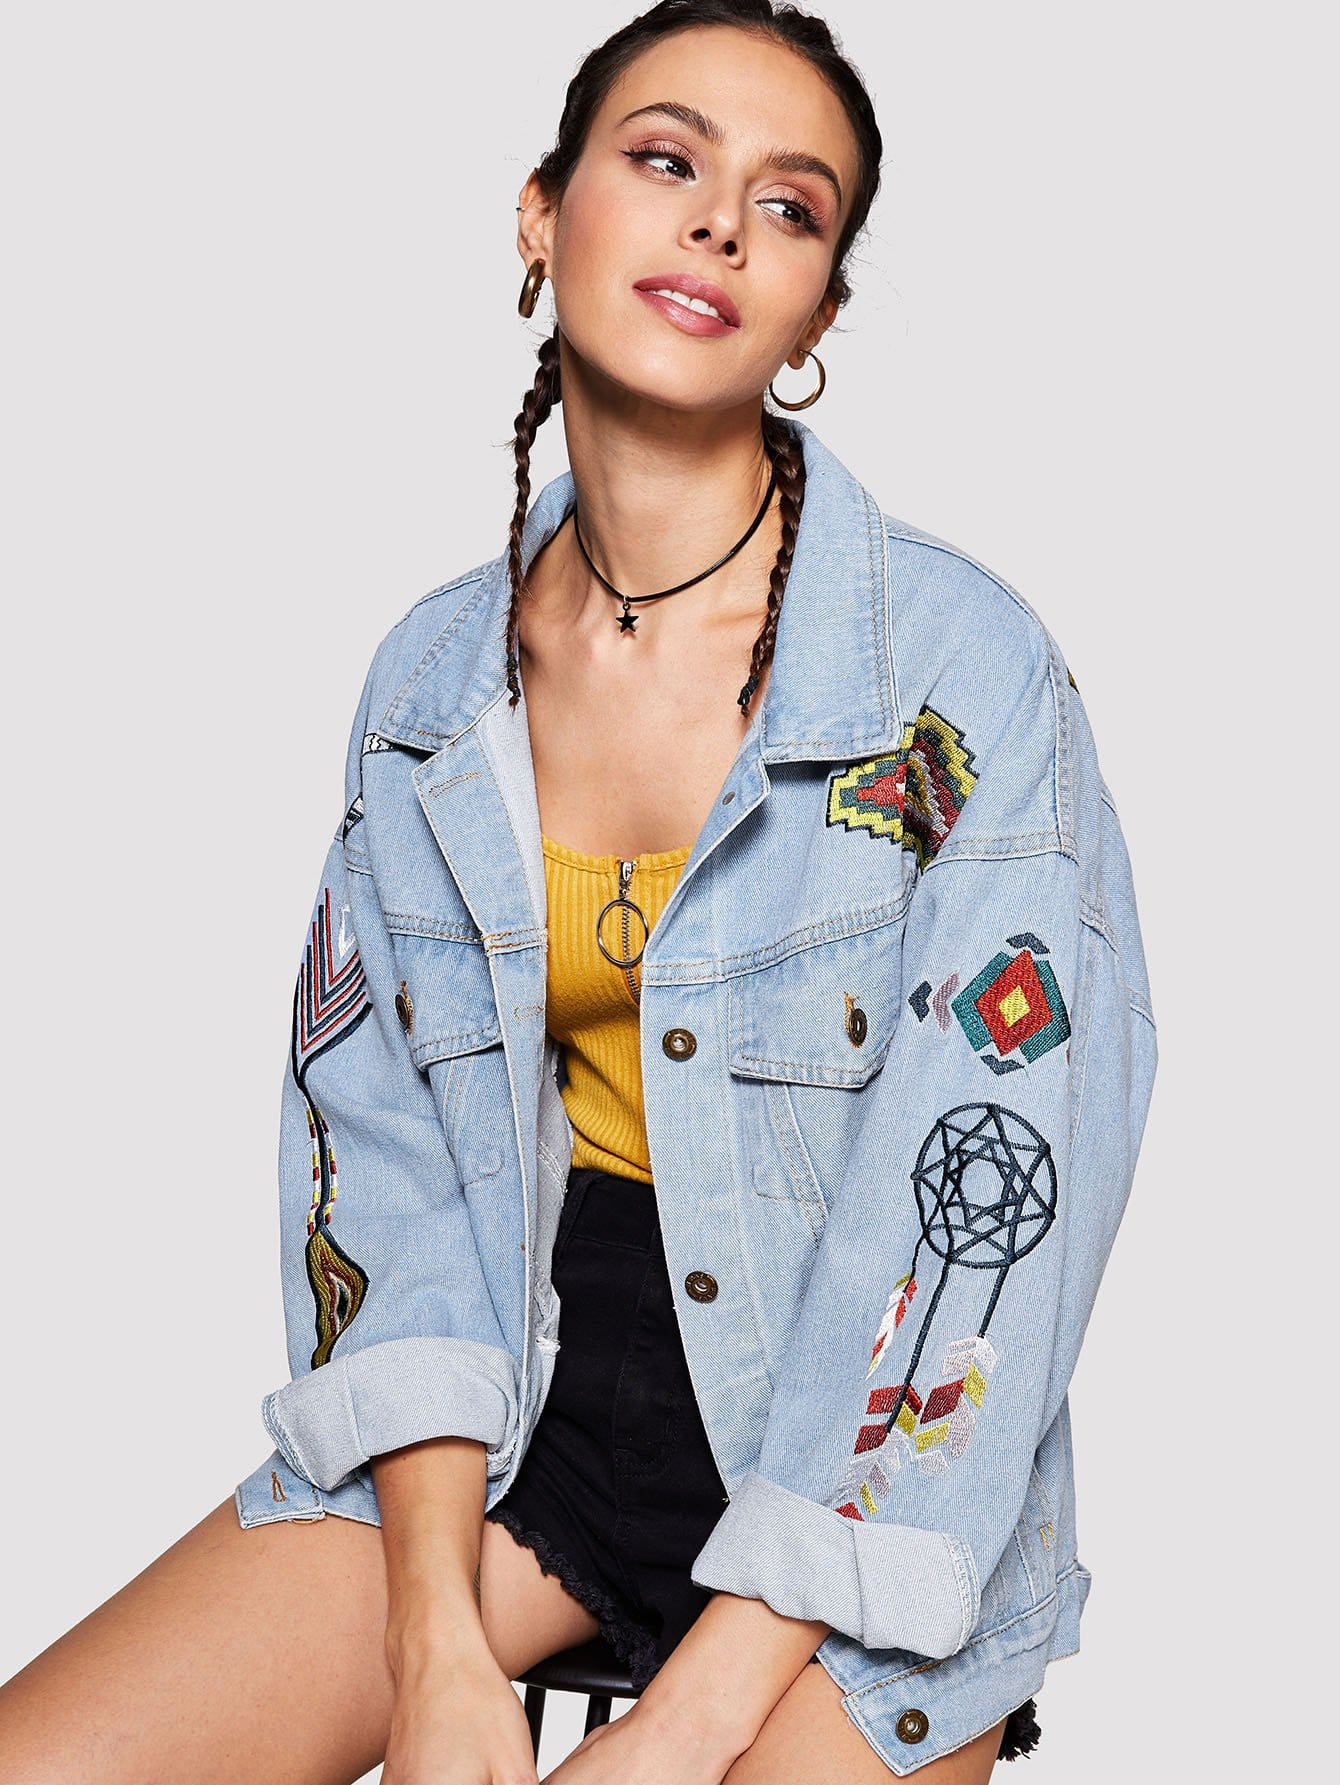 Cartoon Embroidered Denim Jacket cartoon embroidered sweater